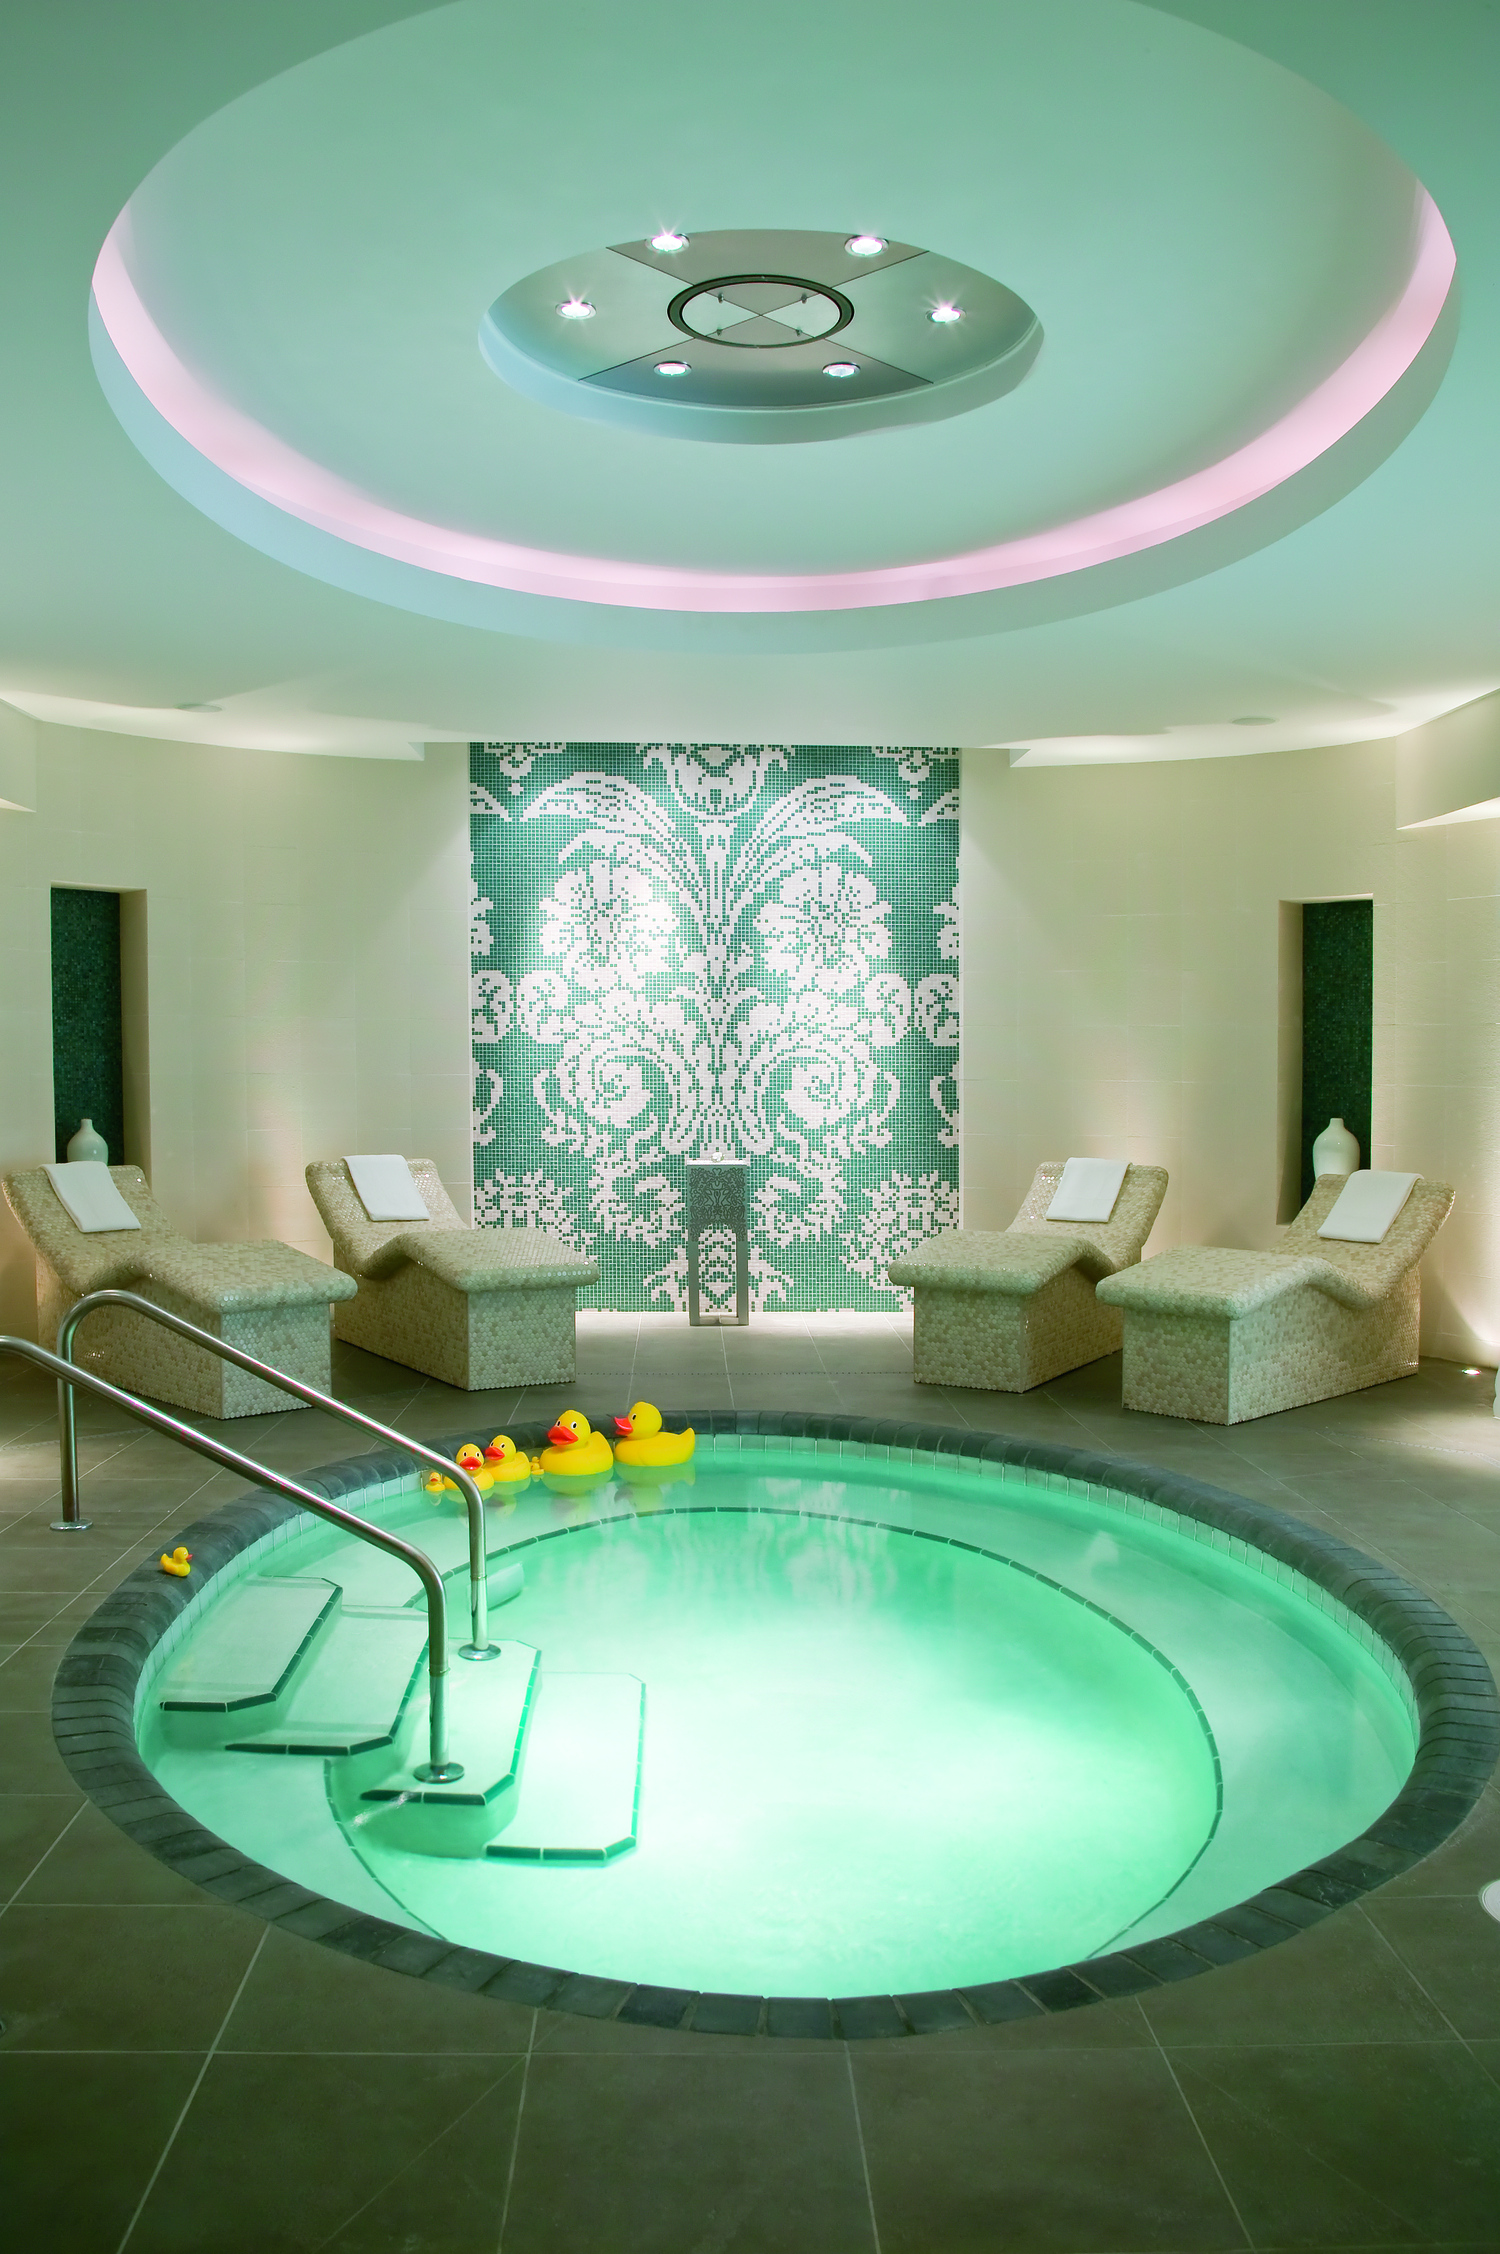 Spa Bath Lounge